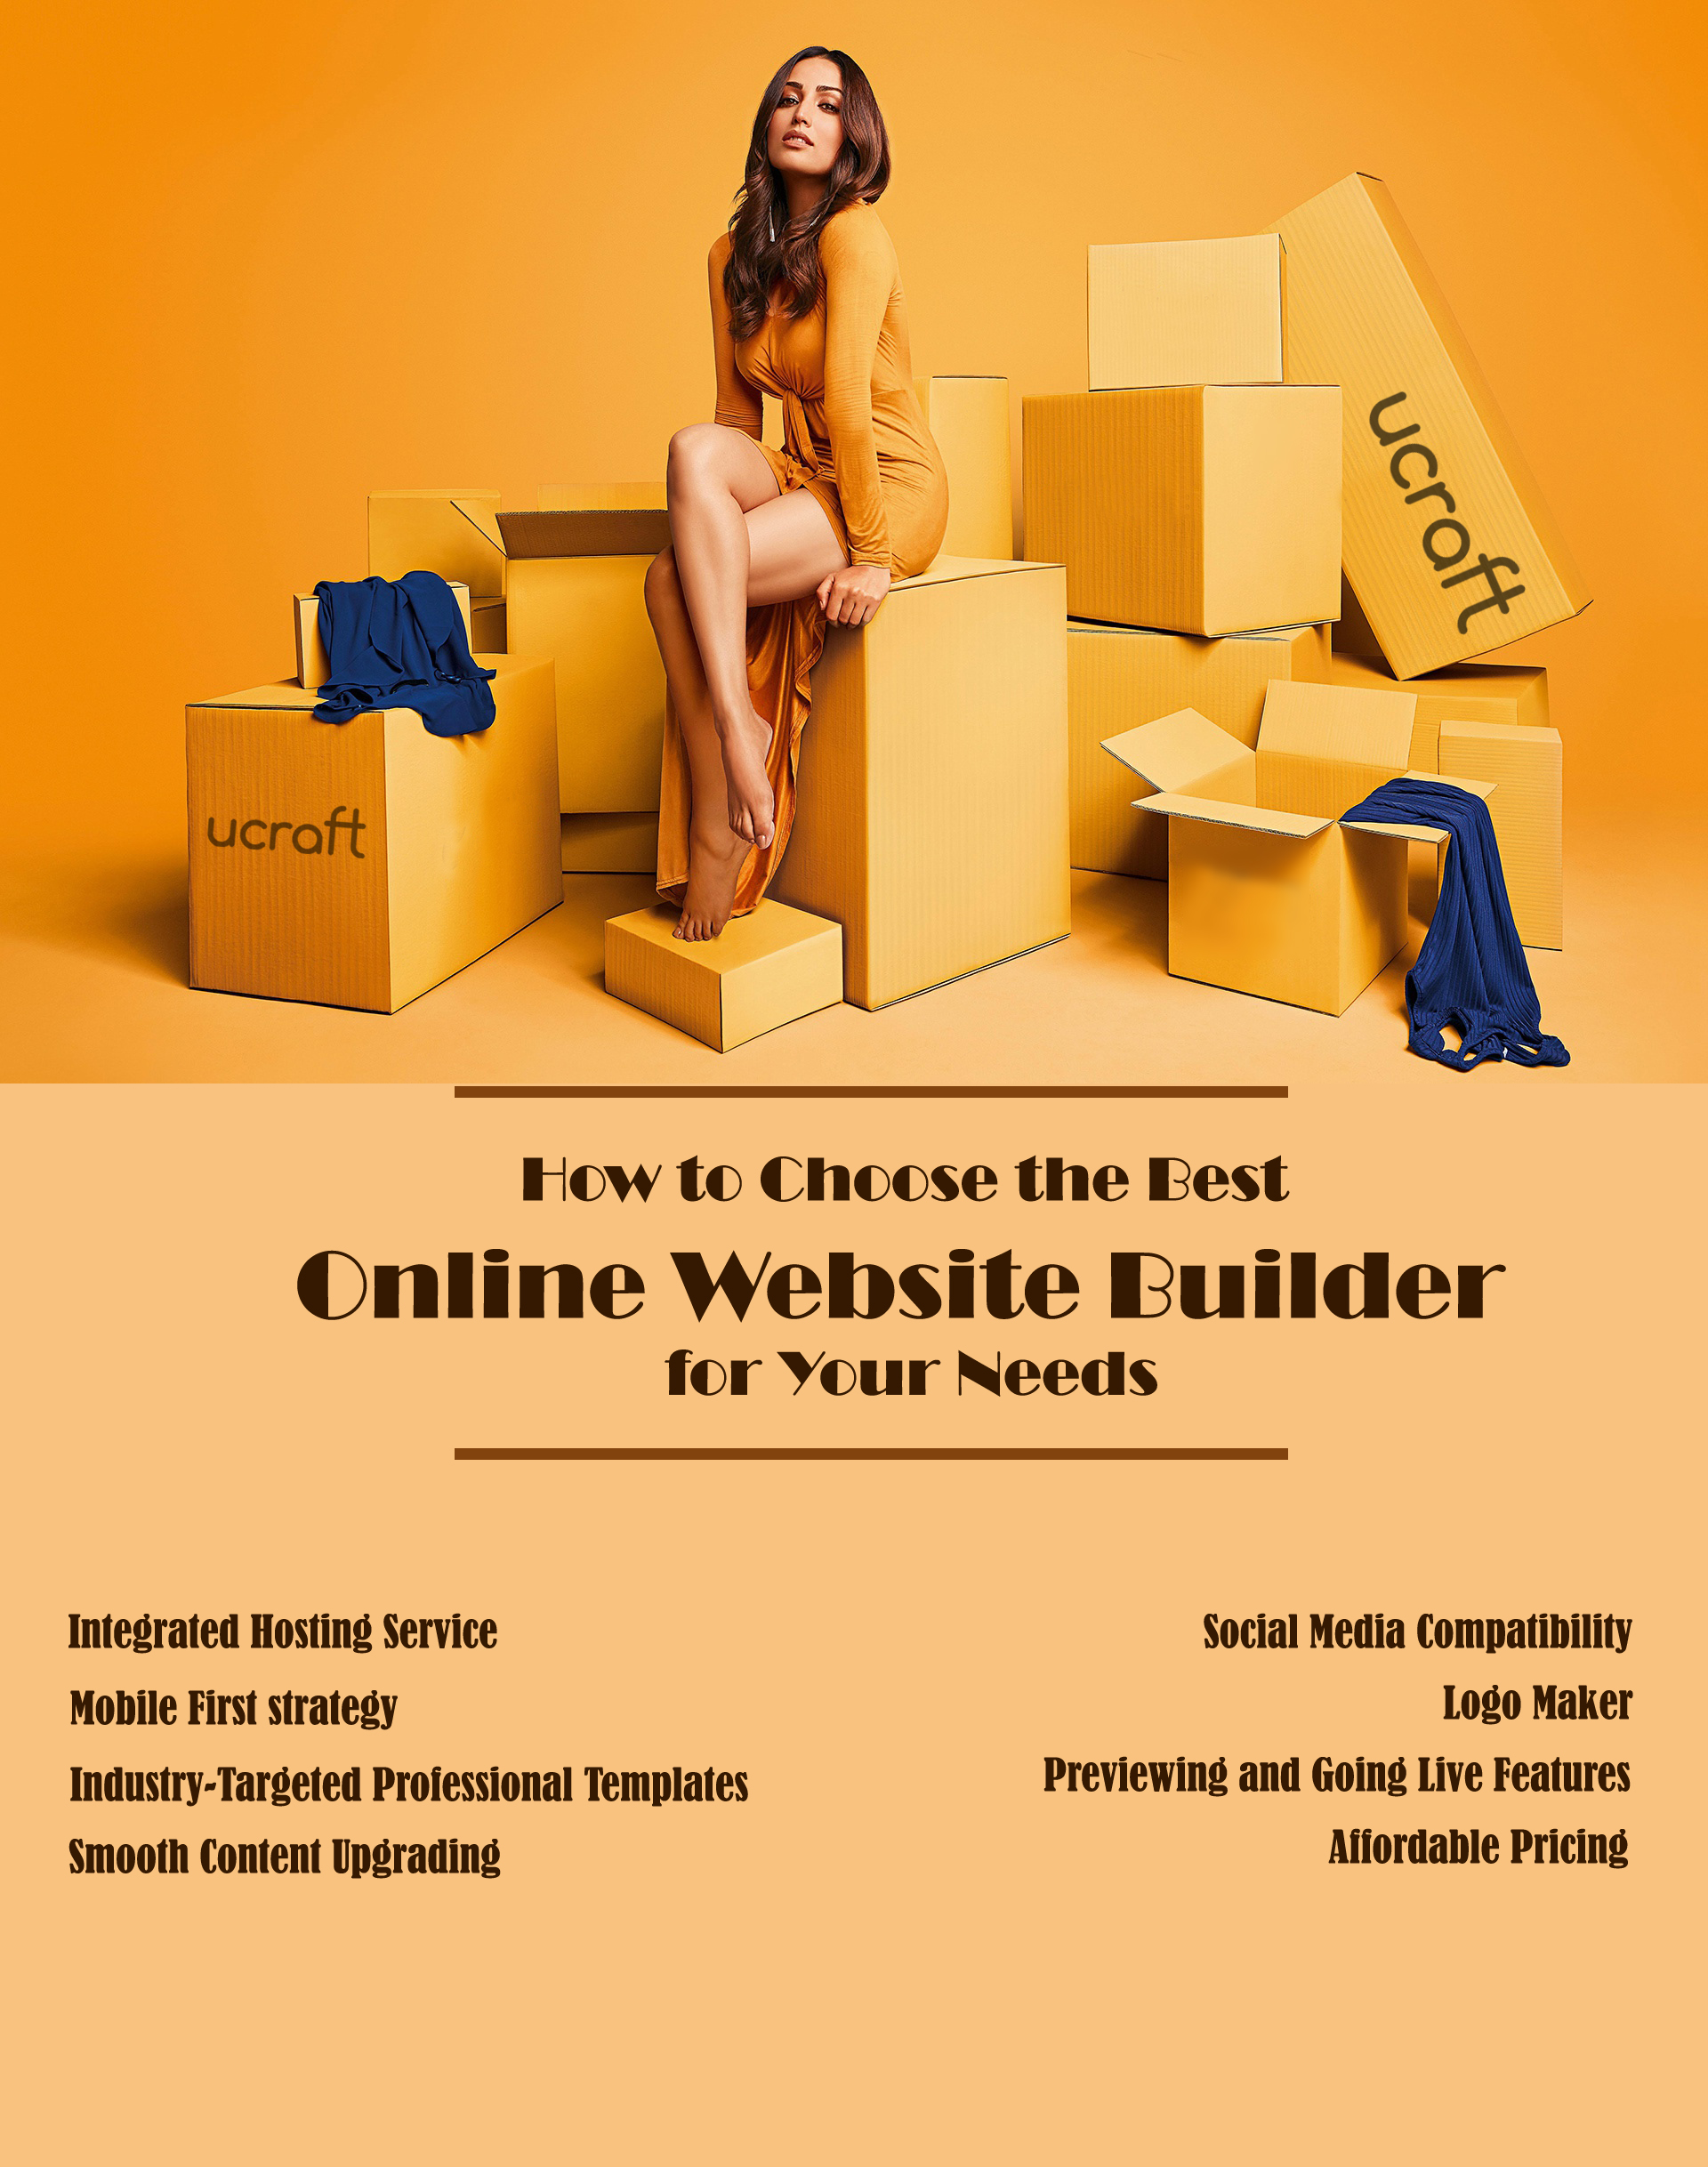 How to Choose the Best Online Website Builder for Your Needs